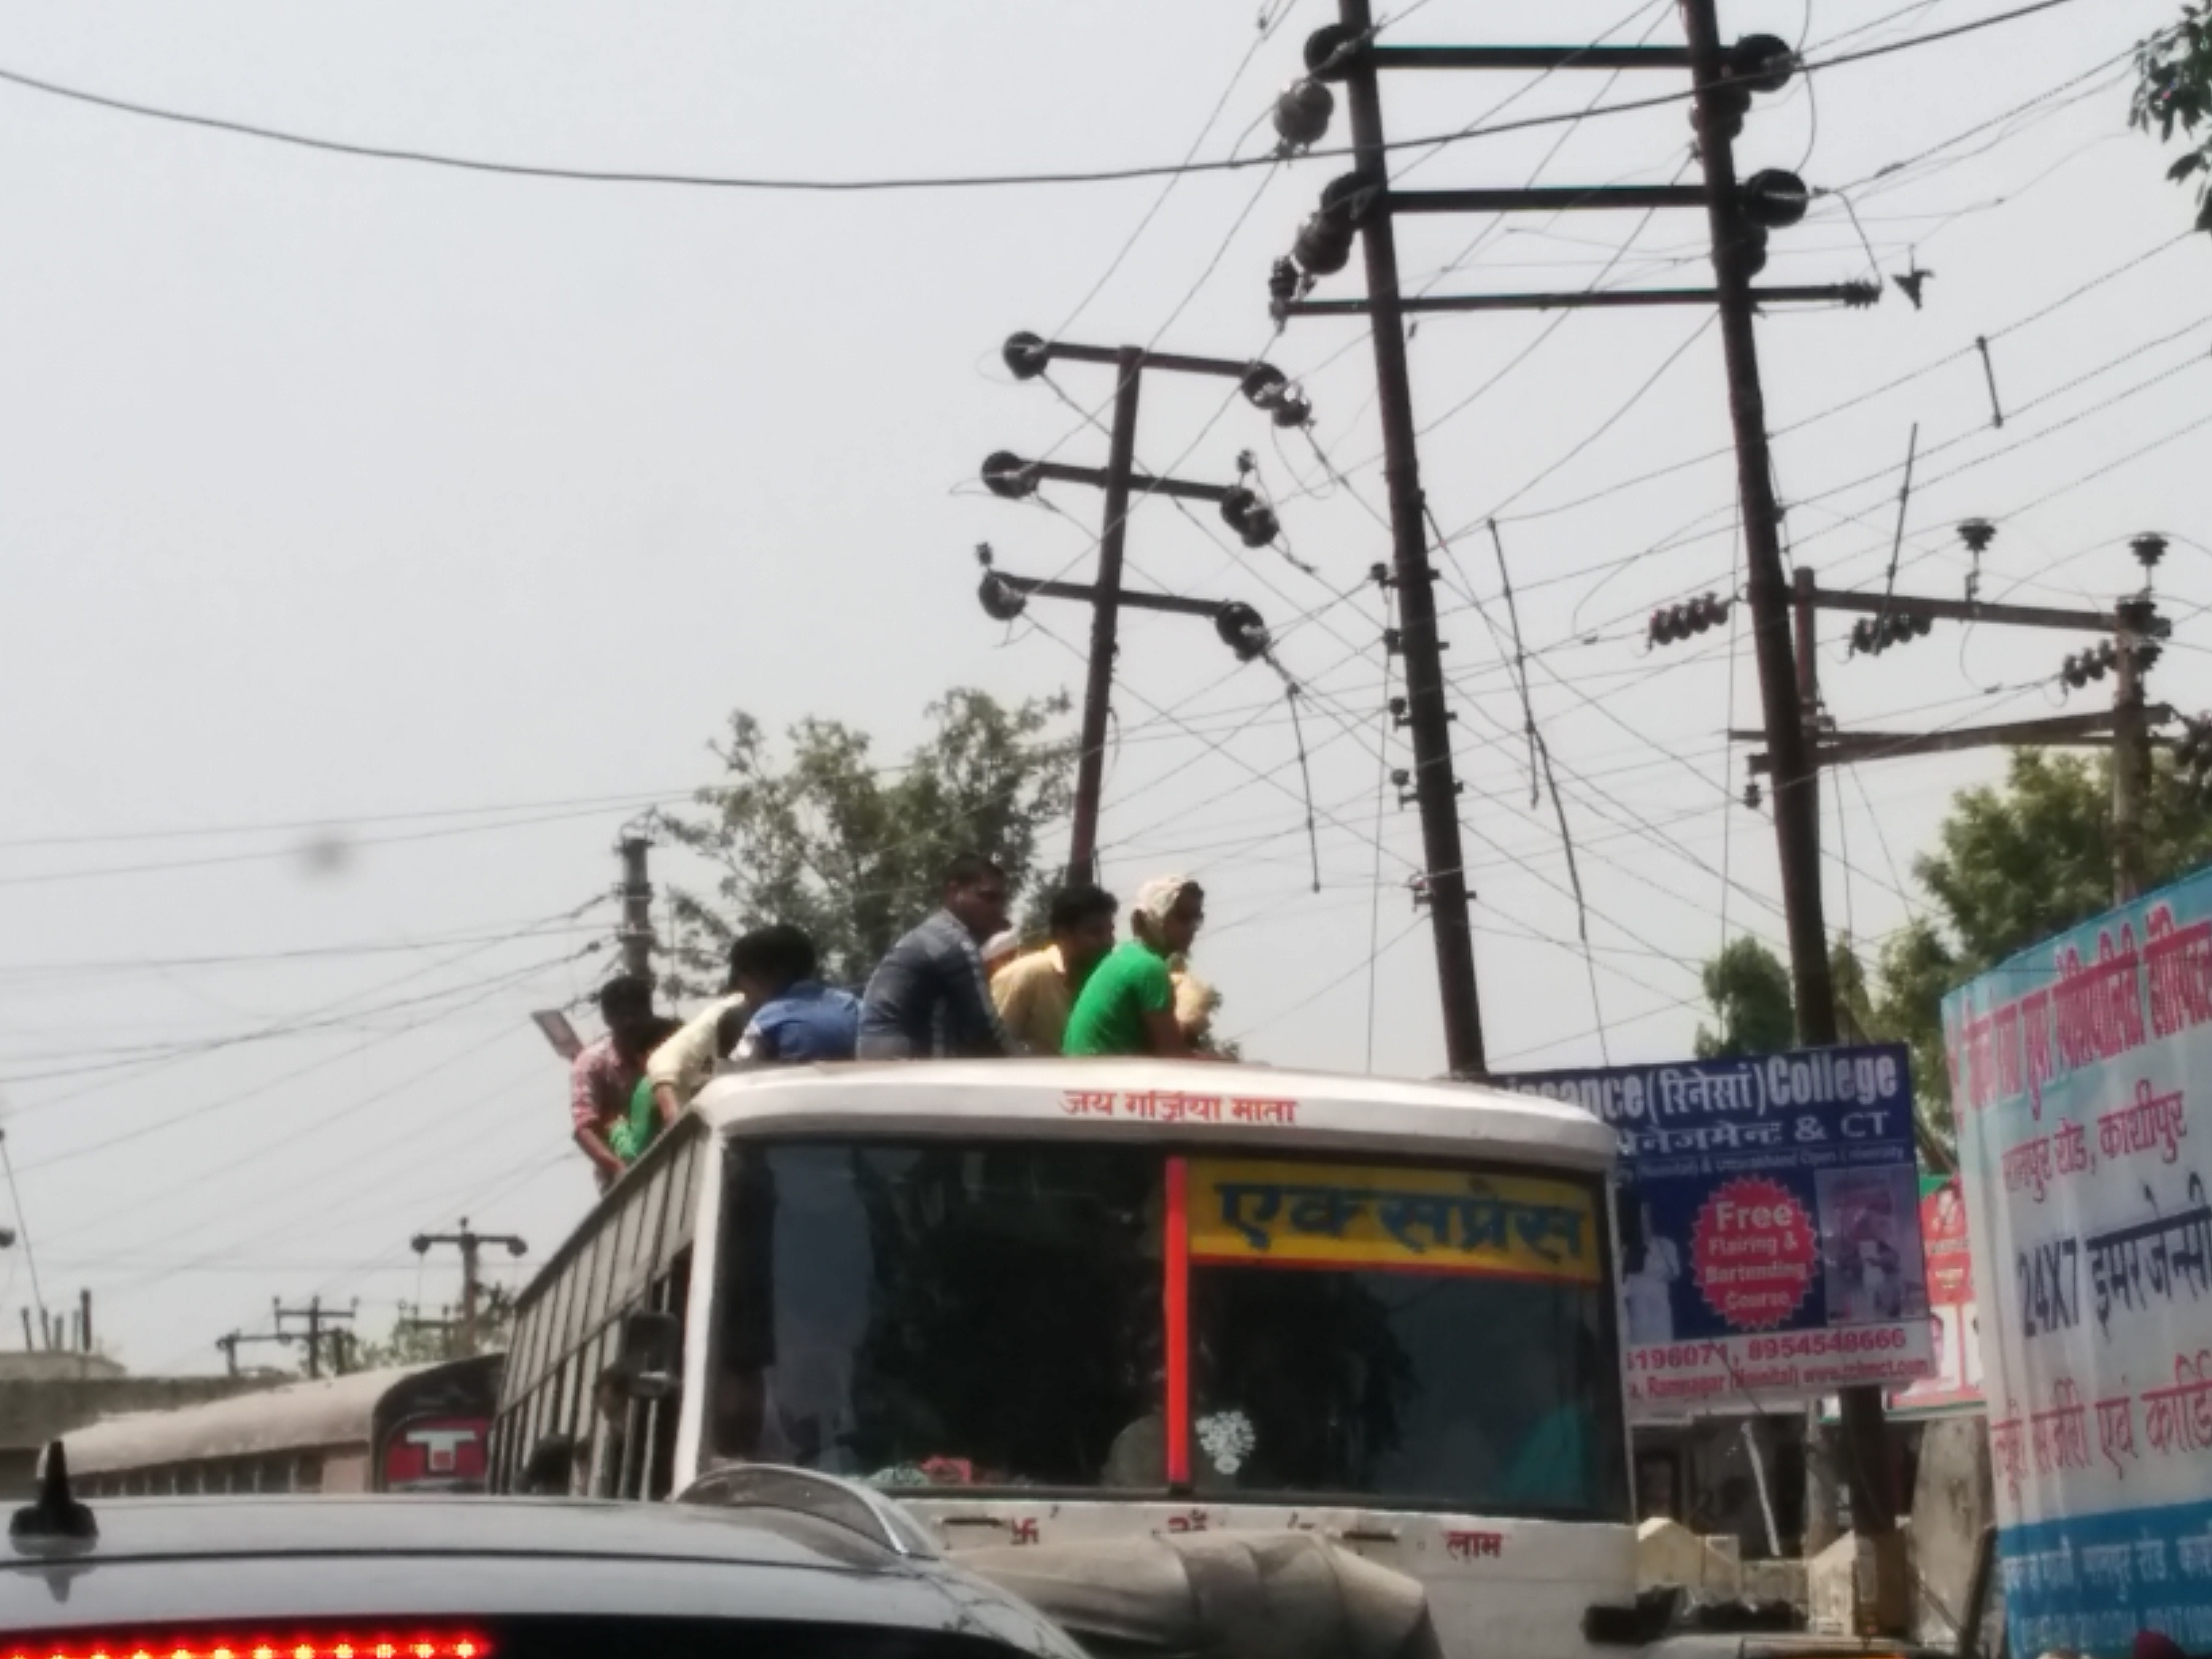 Sitting dangerously atop a bus_Autocar India Uncool Moments